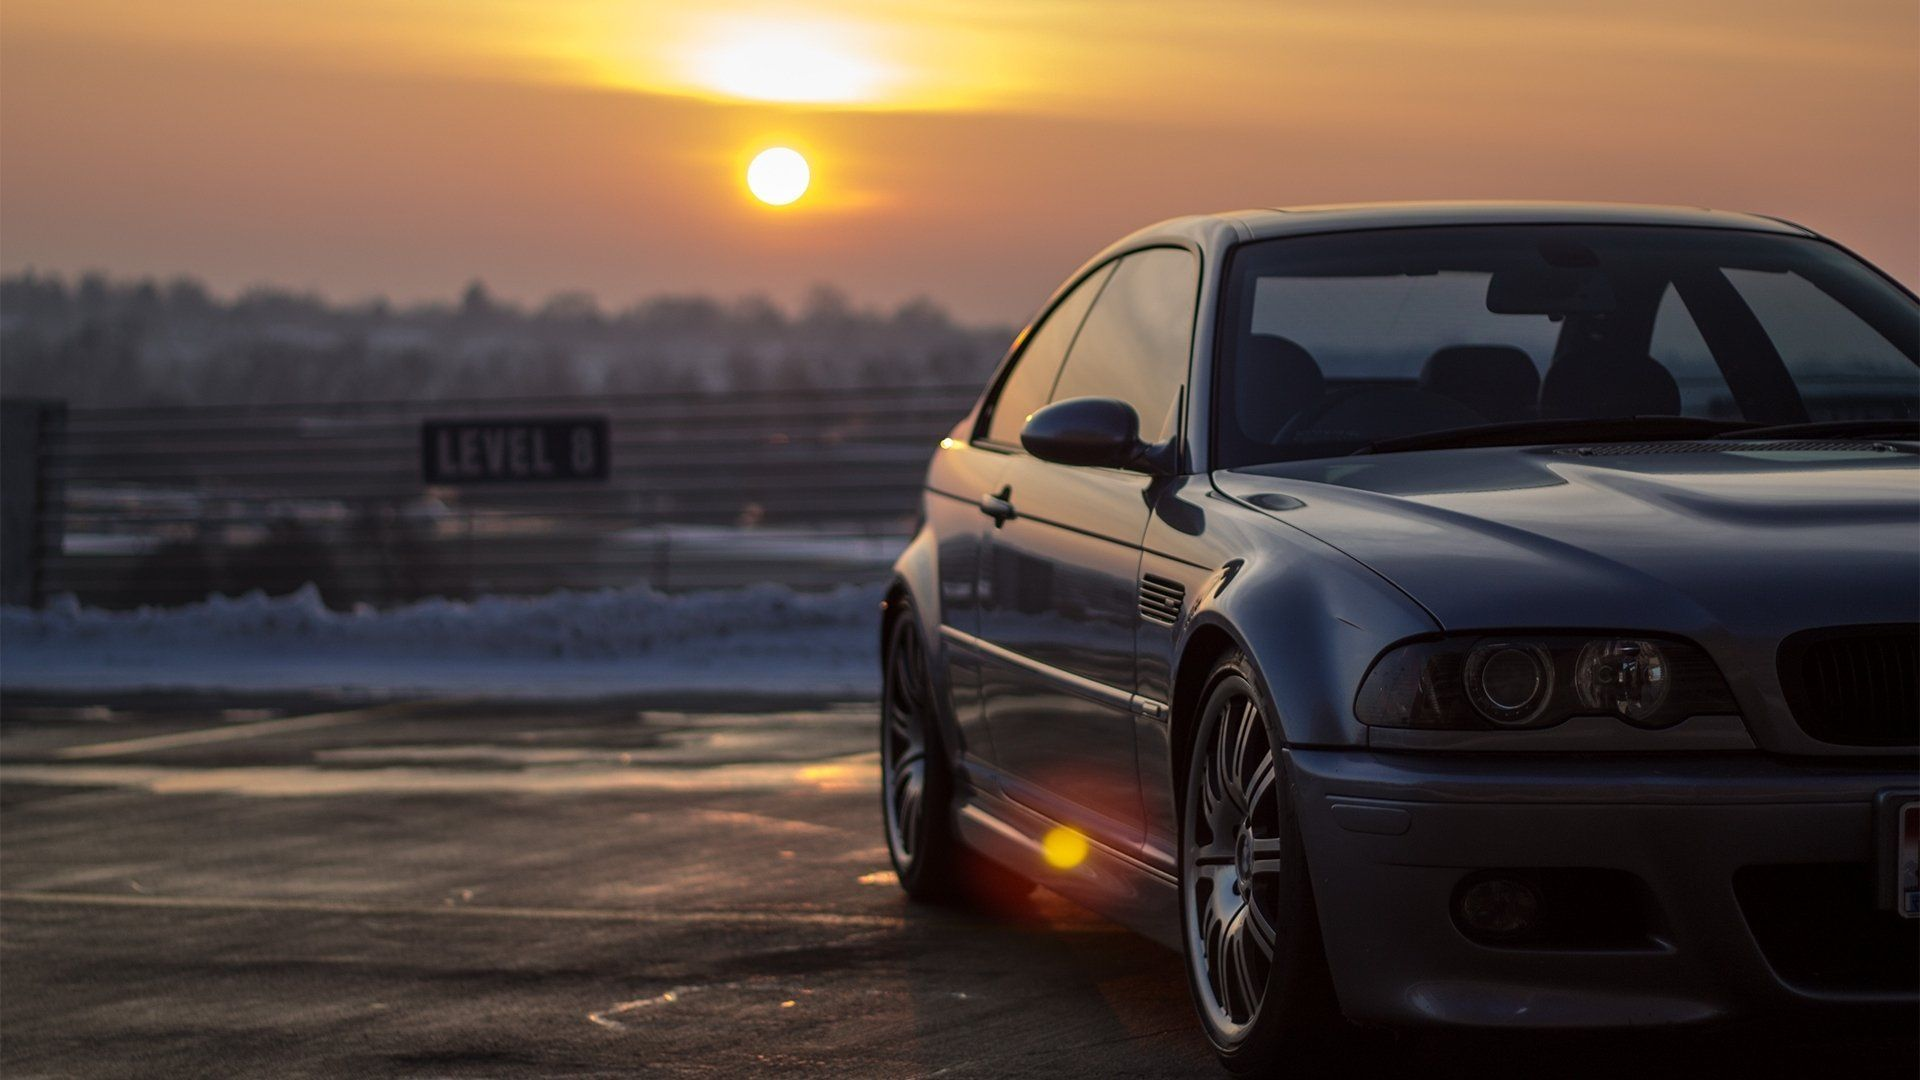 wallpaper.wiki-car-bmw-e46-m3-pictures-pic-wpb0014248 | wallpaper.wiki